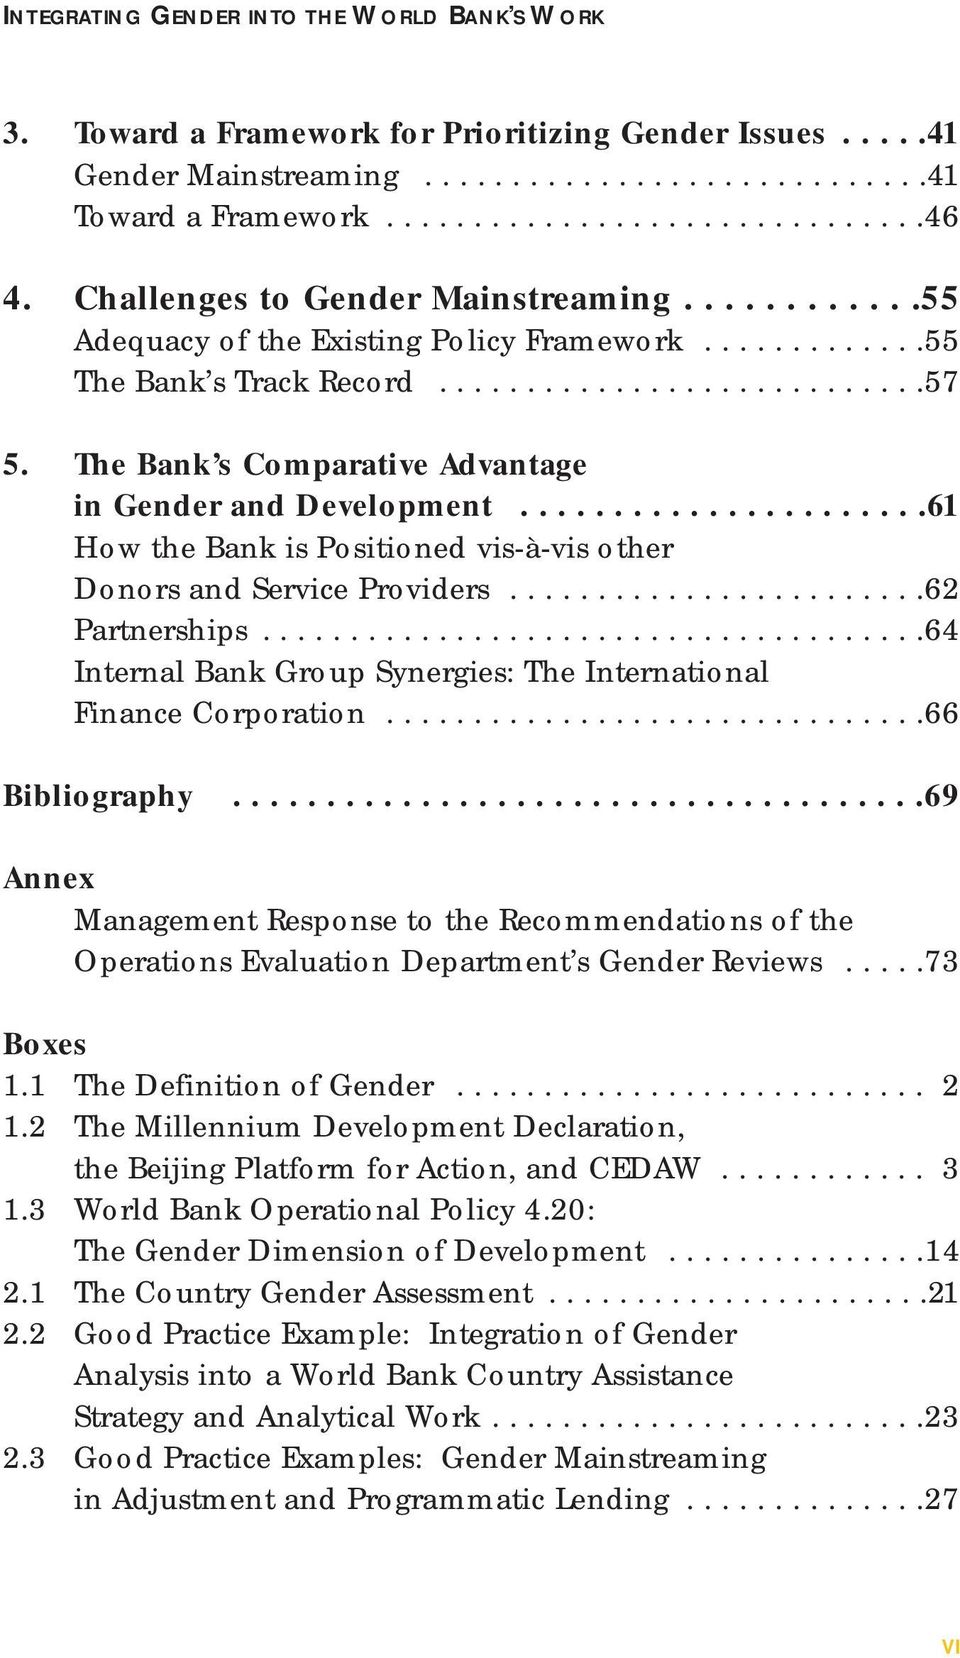 The Bank s Comparative Advantage in Gender and Development......................61 How the Bank is Positioned vis-à-vis other Donors and Service Providers........................62 Partnerships.